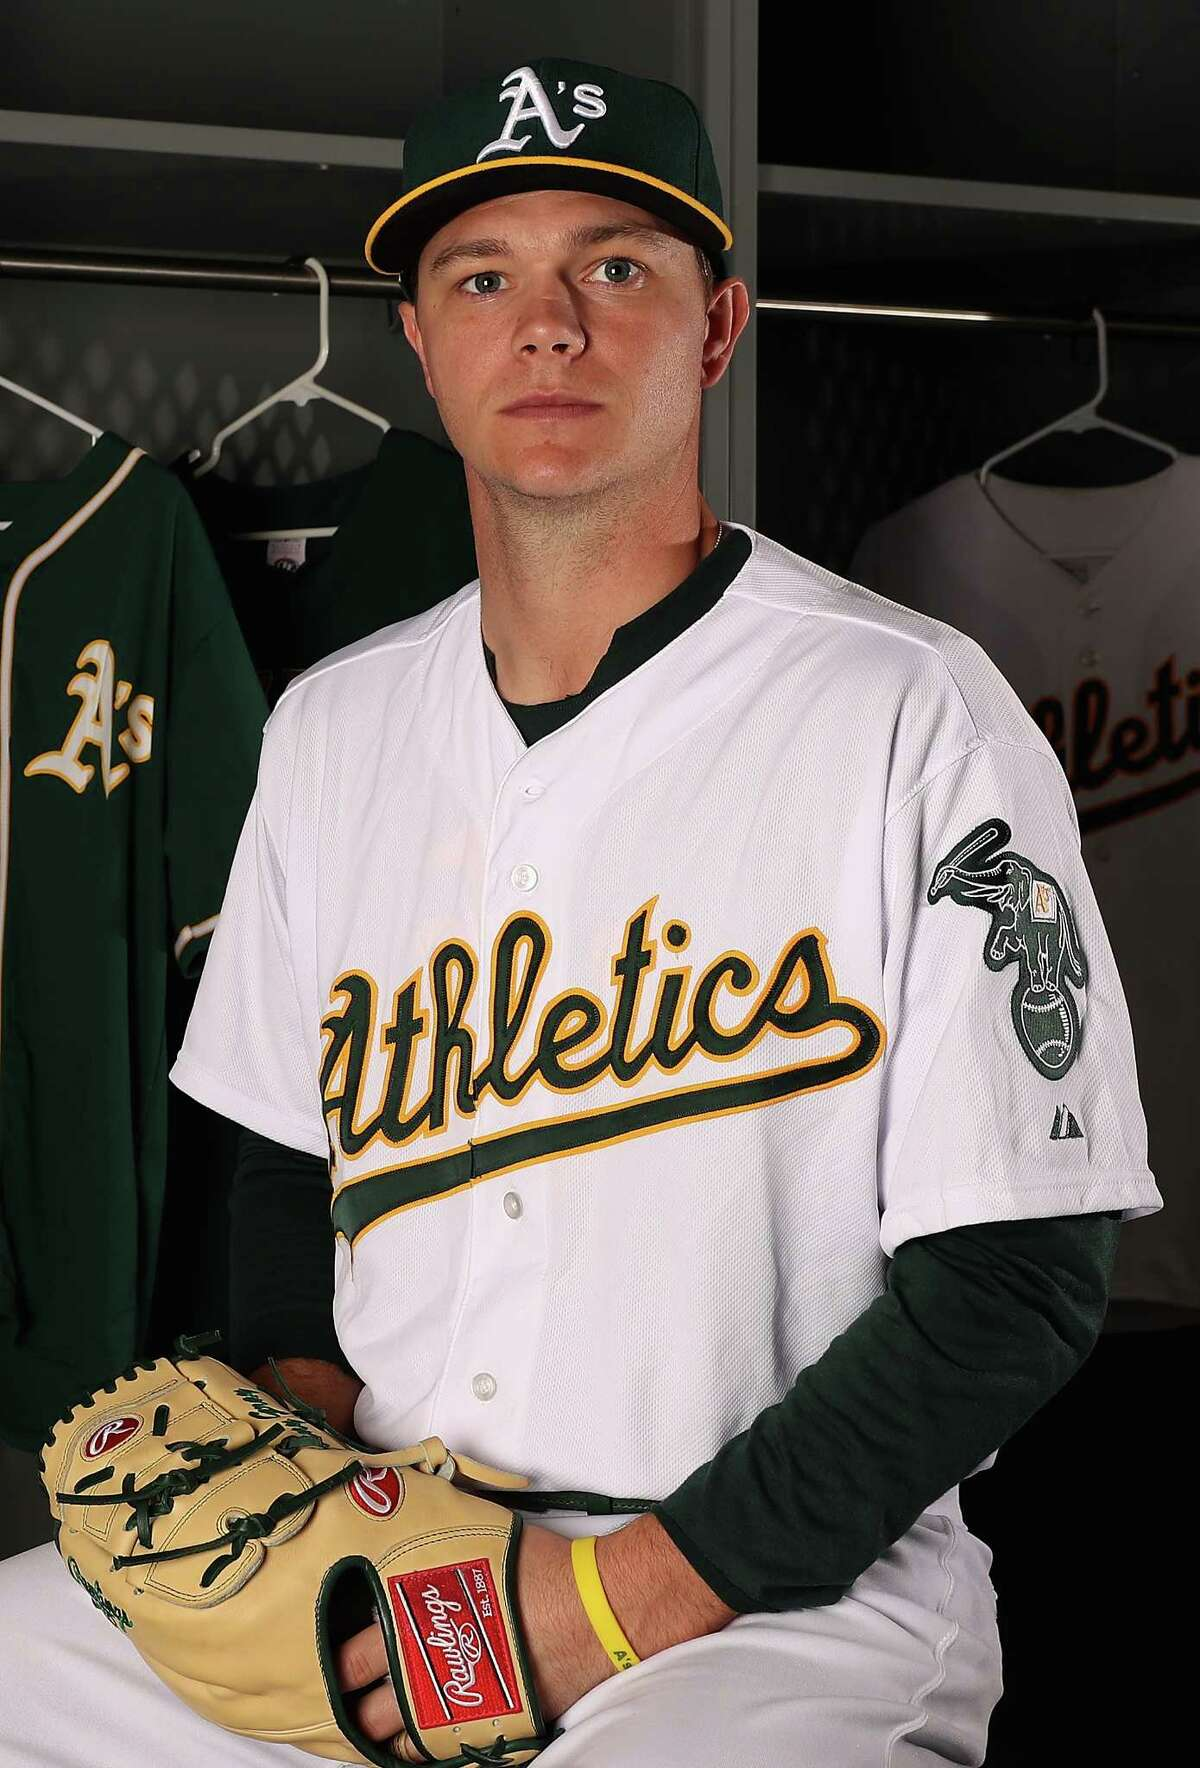 MESA, AZ - FEBRUARY 22: Pitcher Sonny Gray #54 of the Oakland Athletics poses for a portrait during photo day at HoHoKam Stadium on February 22, 2017 in Mesa, Arizona. (Photo by Christian Petersen/Getty Images) ORG XMIT: 694709789